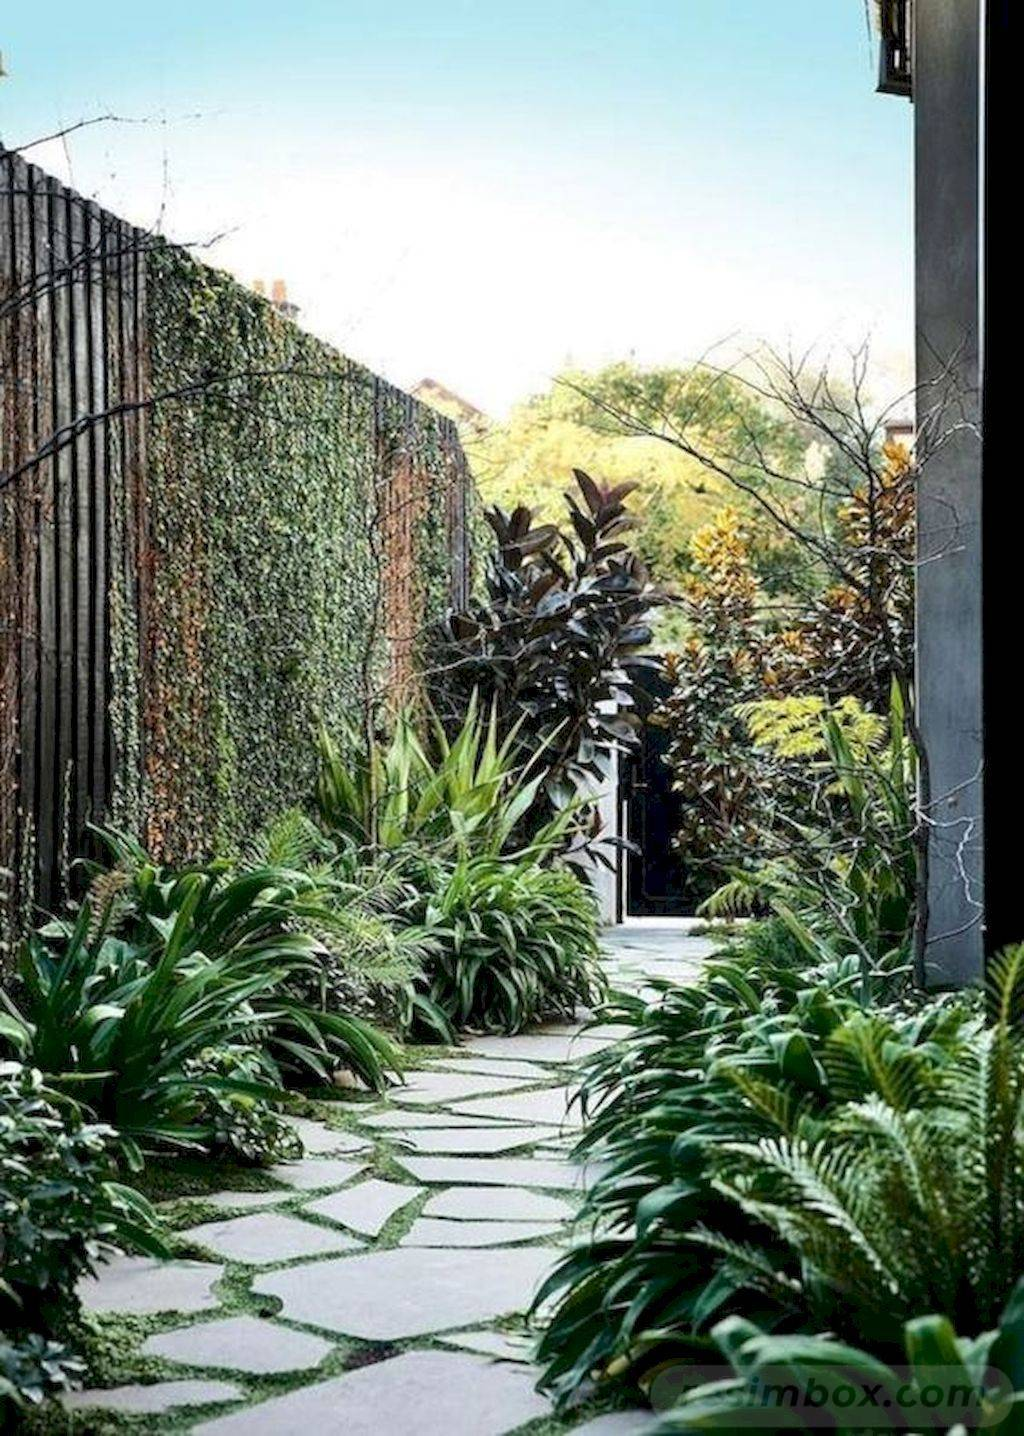 tropical garden ideas-687080486880977444